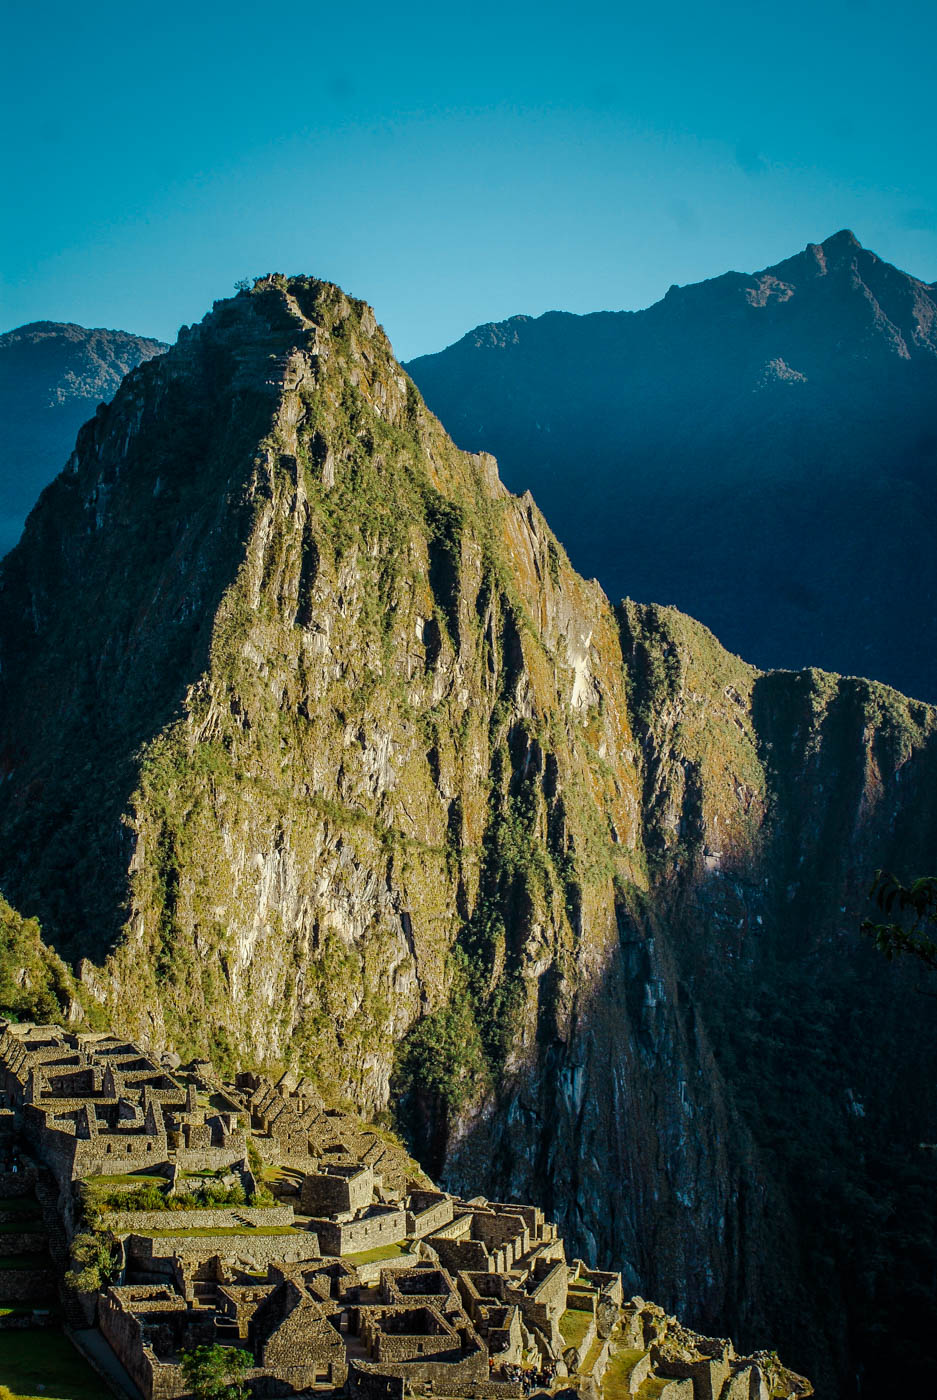 Machu Picchu. South America Travel Bucket List. 90 Awesome Things to do in South America When Backpacking and Travelling #southamerica #bucketlist #traveldestinations